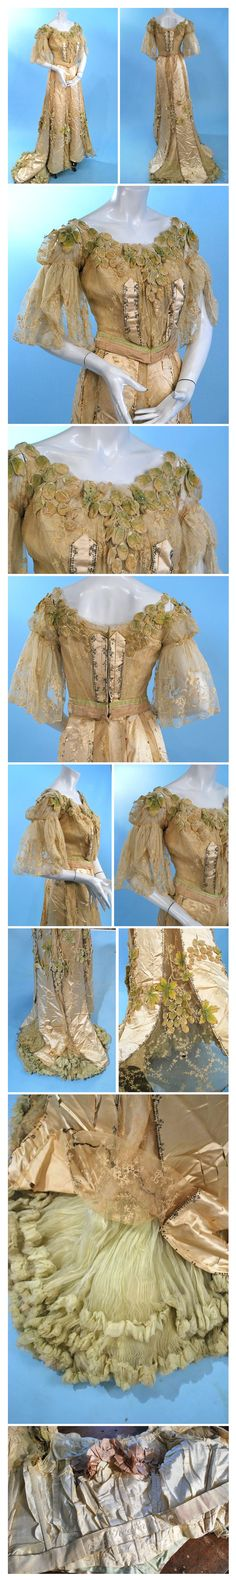 1890s Ball gown labeled Redfern, Paris/NY.Bodice adorned with the hand tinted velvet grape applique that is featured thru out the outfit, further embellished with sparkling tiny silver sequins and metal spangles and rhinestones.  Panels of the silk alternating with delicate lace, lavish lime green knife pleat chiffon flounce under the skirt. Ebay:heartnsoul1 Carolyn Forbes Textiles